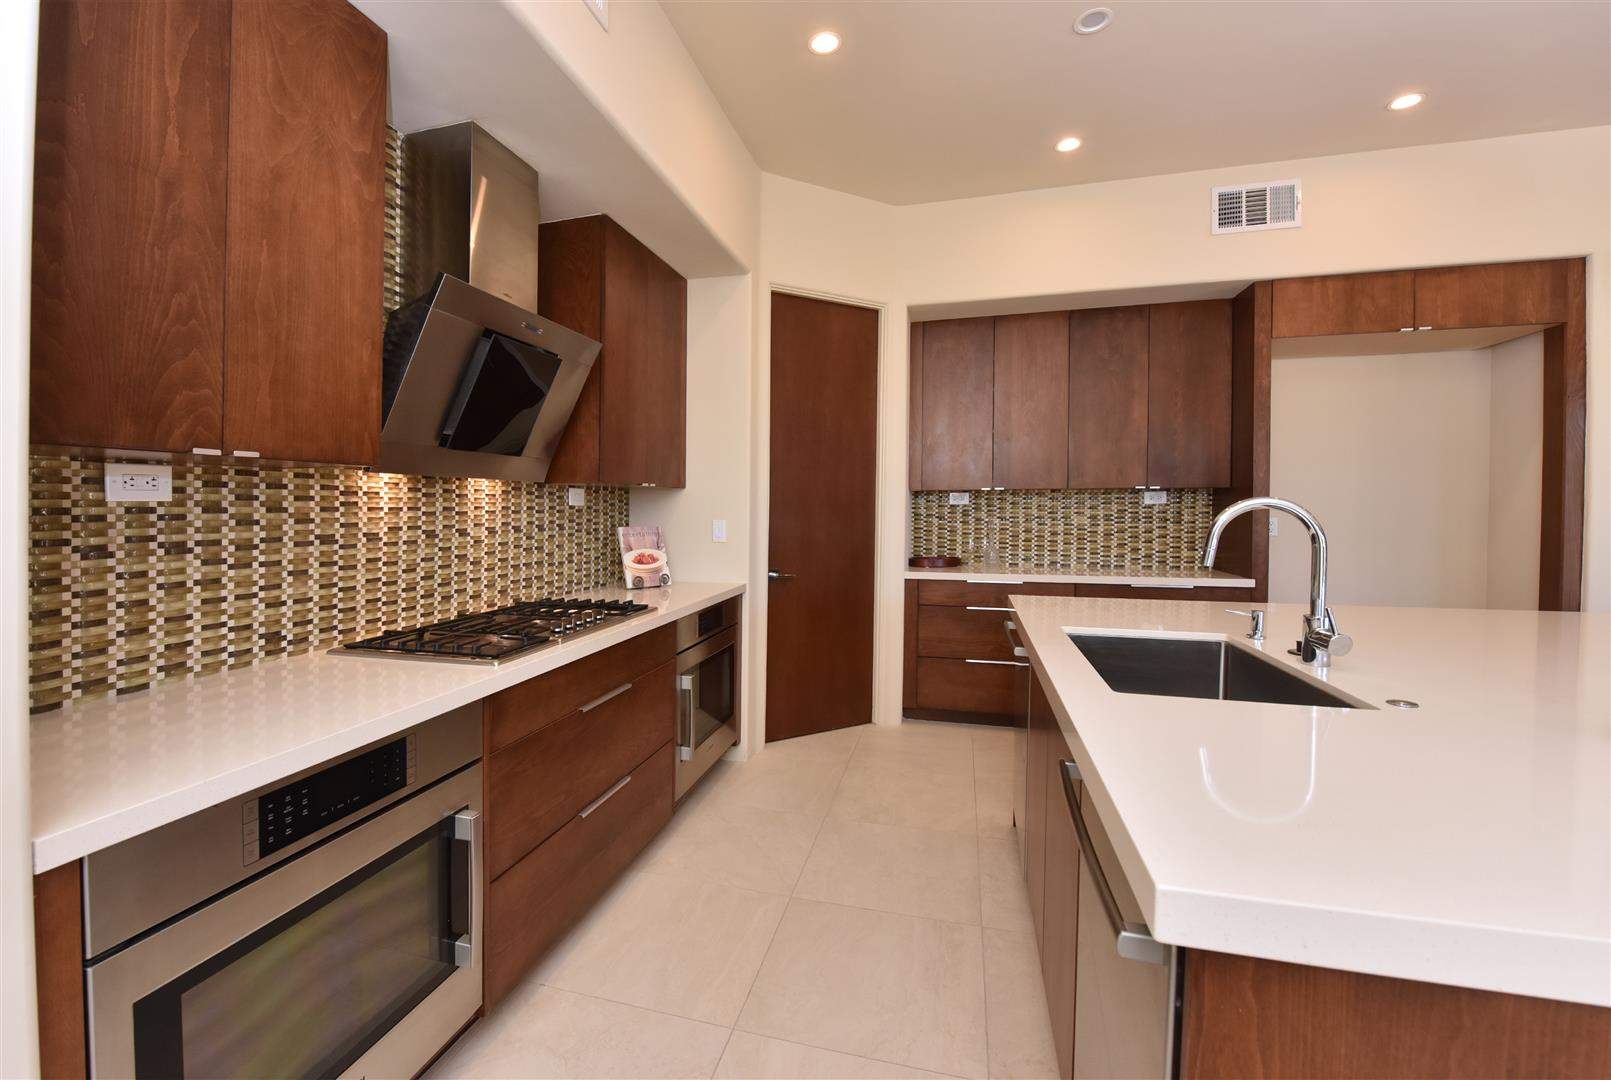 In This Contemporary North Scottsdale Home We Used Maple Frameless Cabinets  With Med Stain From Canyon Creek Cabinet Companyu0027s Millennia Line.